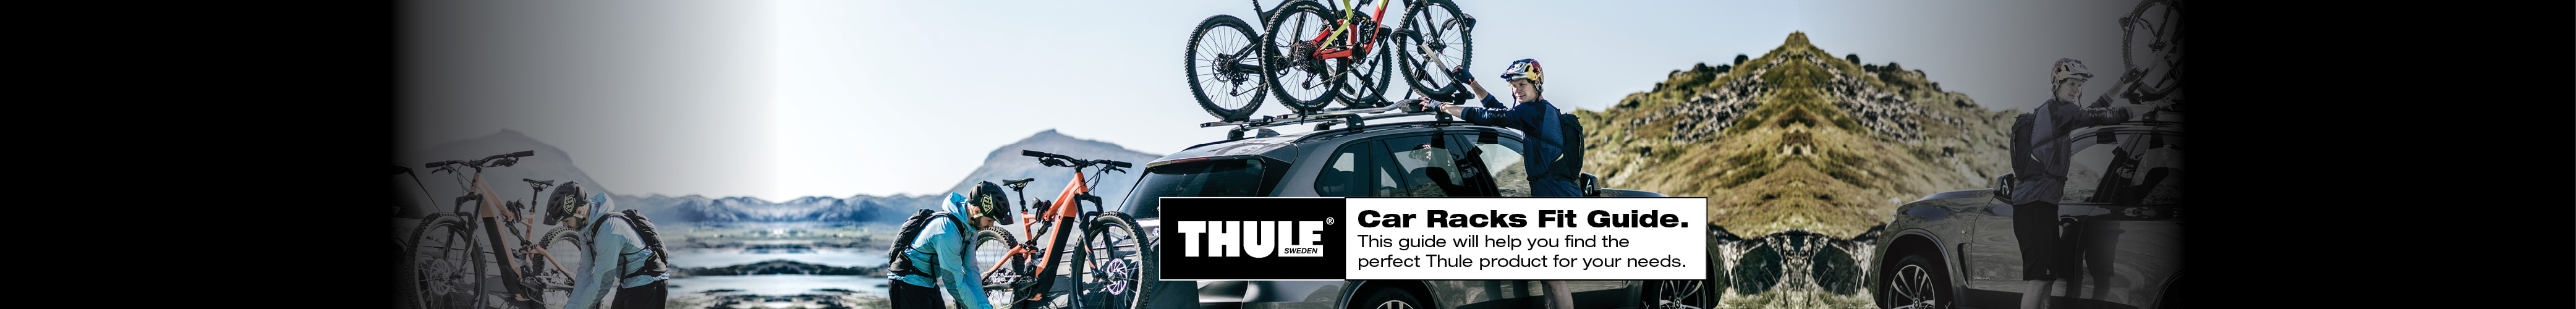 Thule fit guide.  Check your vehicle fitment.